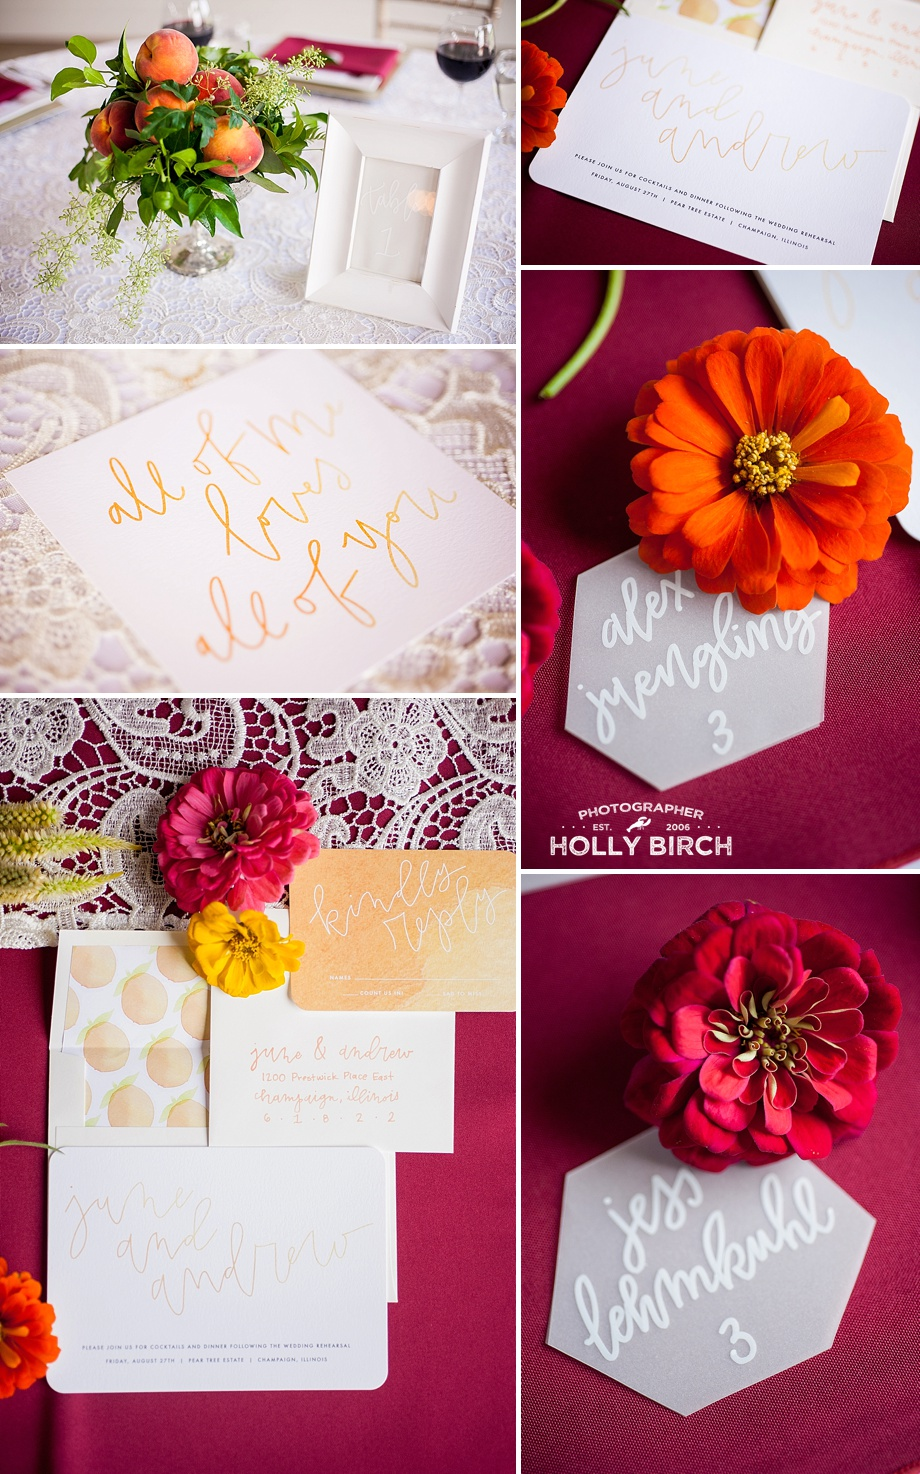 vellum name cards with zinnias